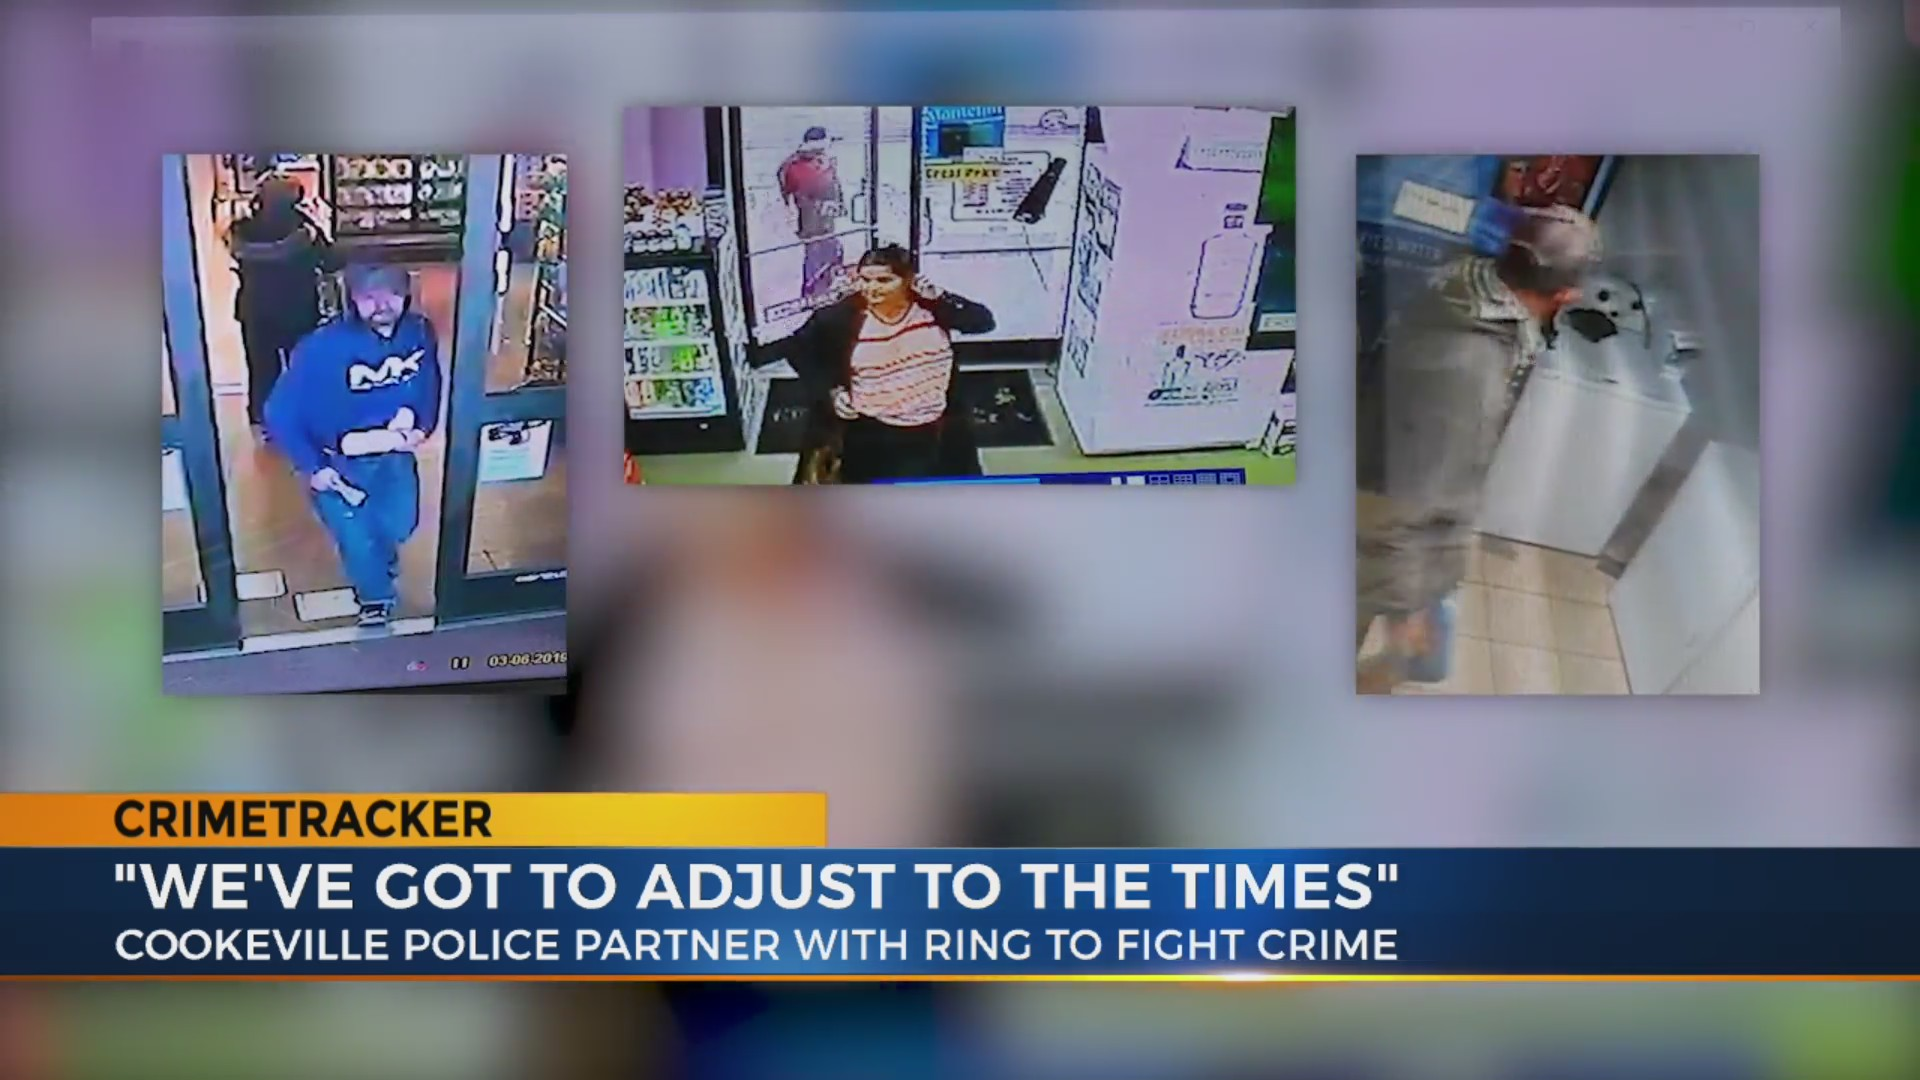 Cookeville police use Ring cameras/app to fight crime | WKRN